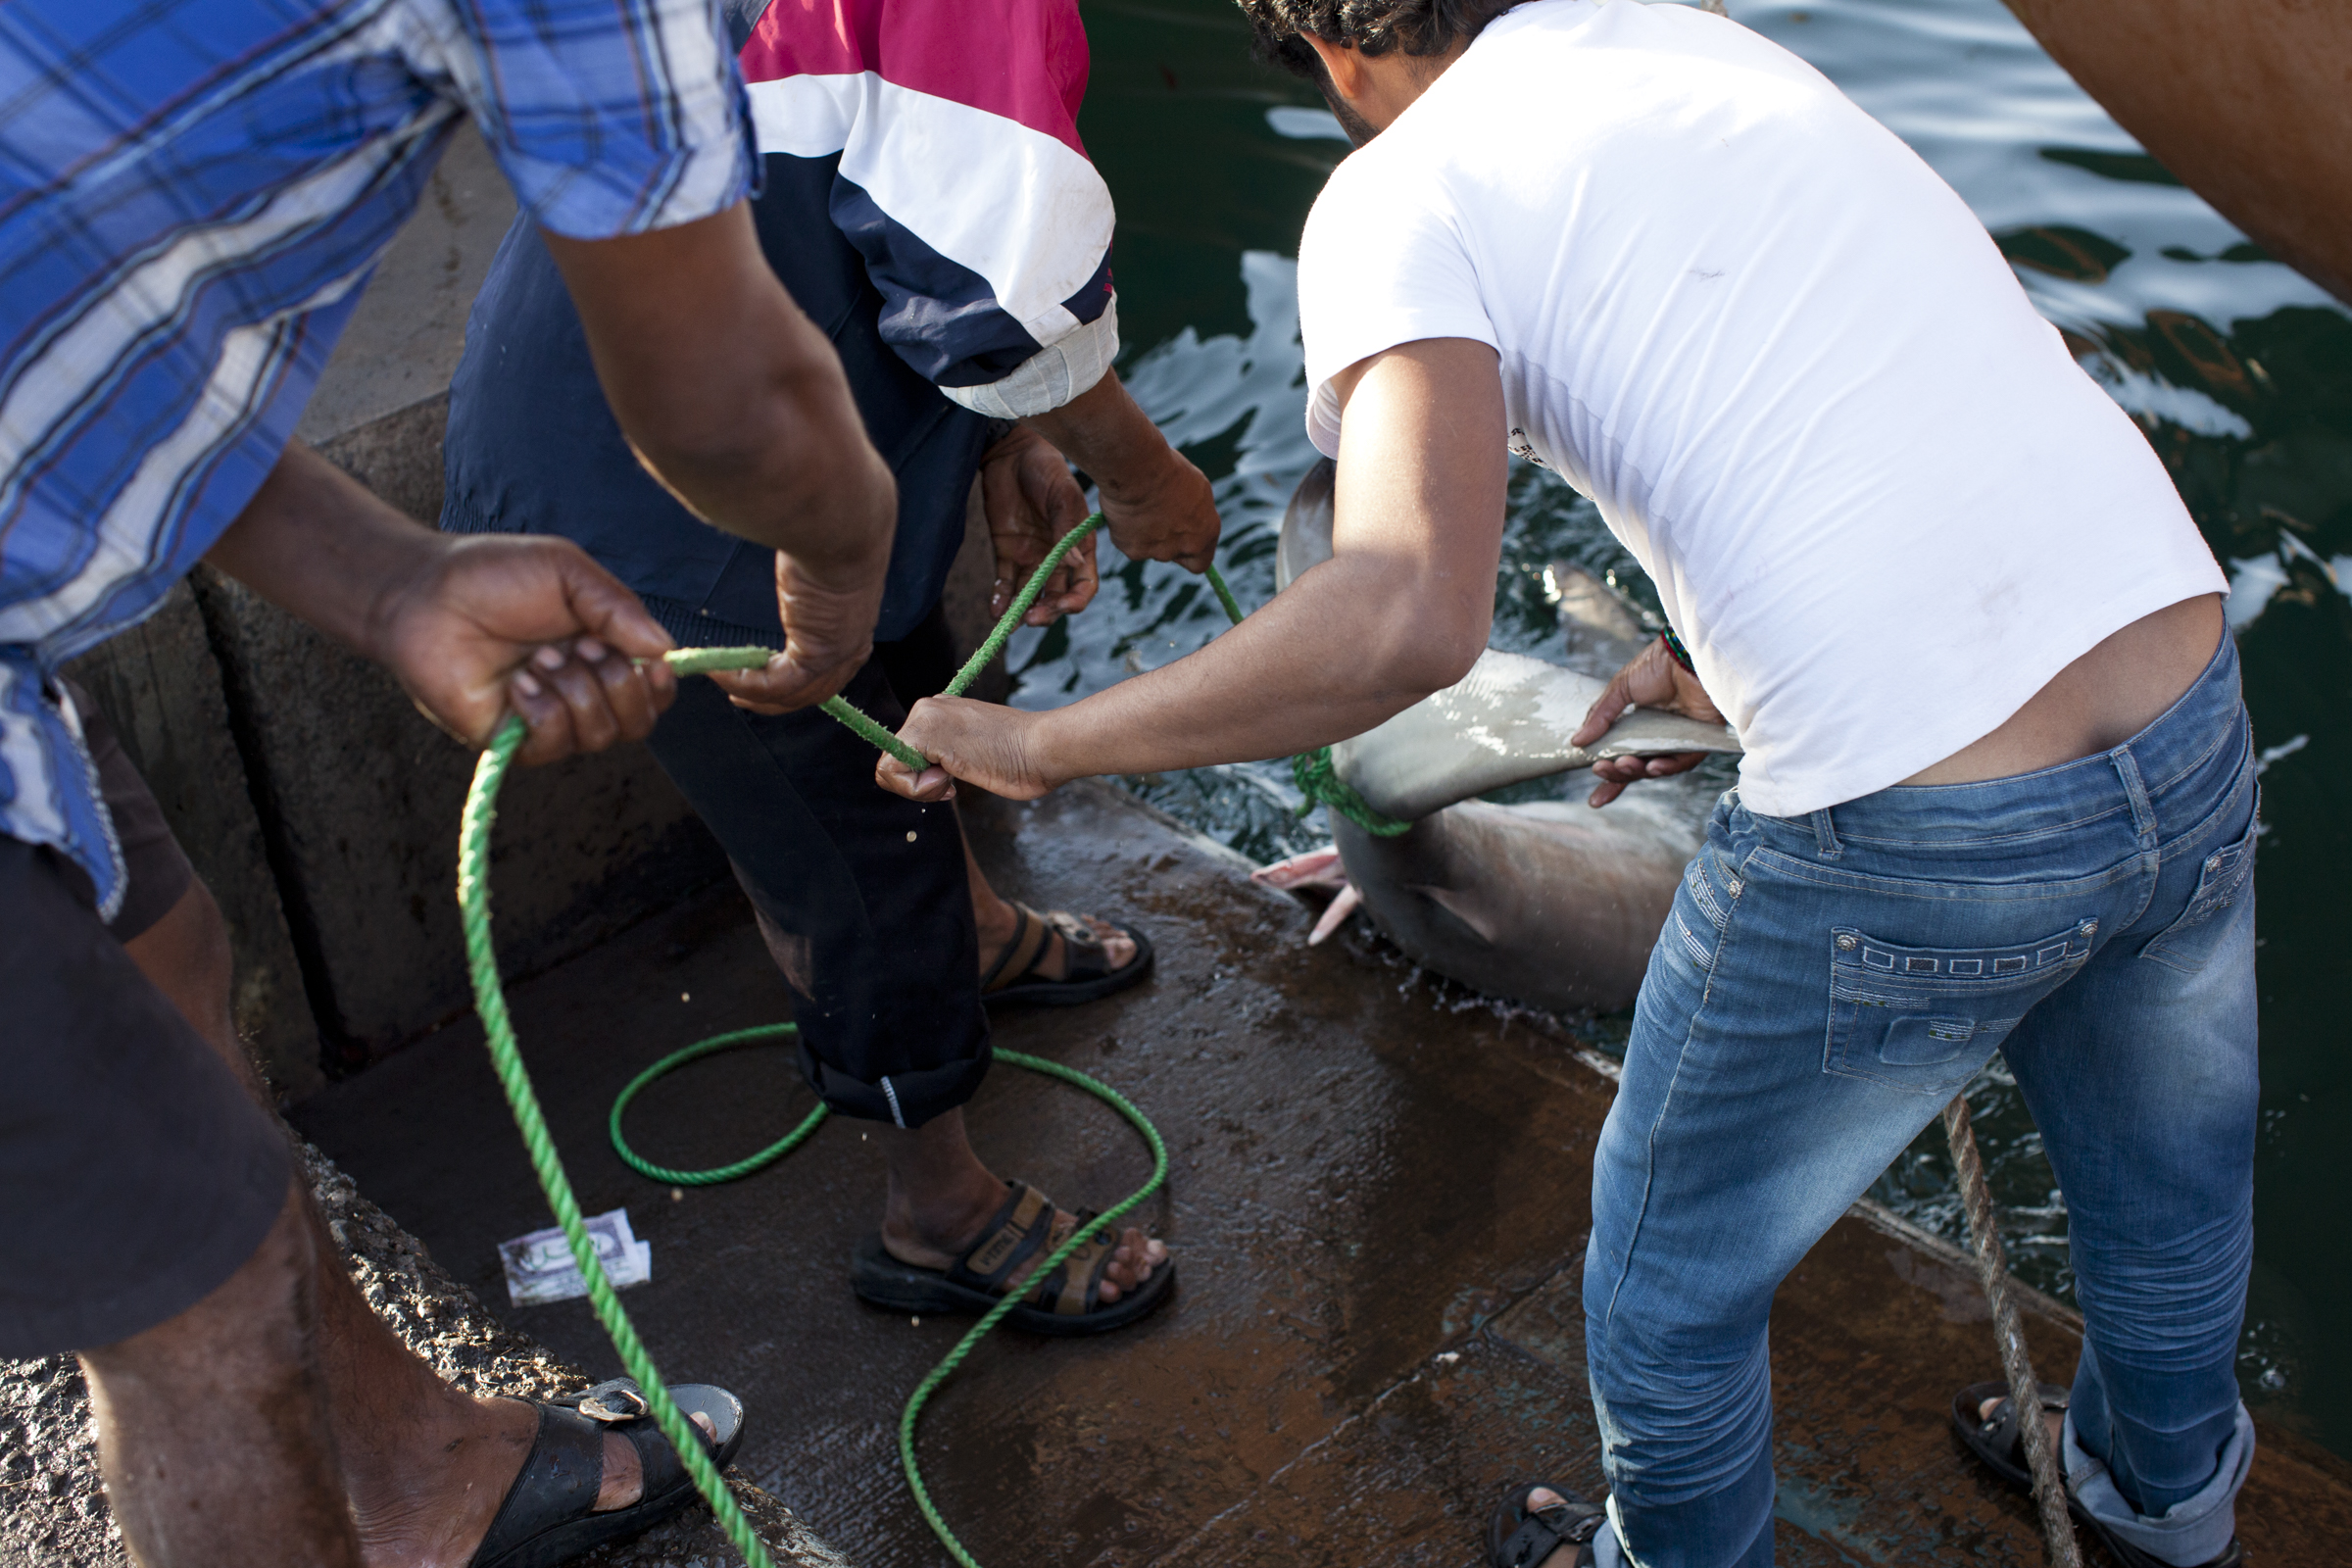 shark fishing, endagered species, abu dhabi, fisherman, illegal fishing-027.jpg